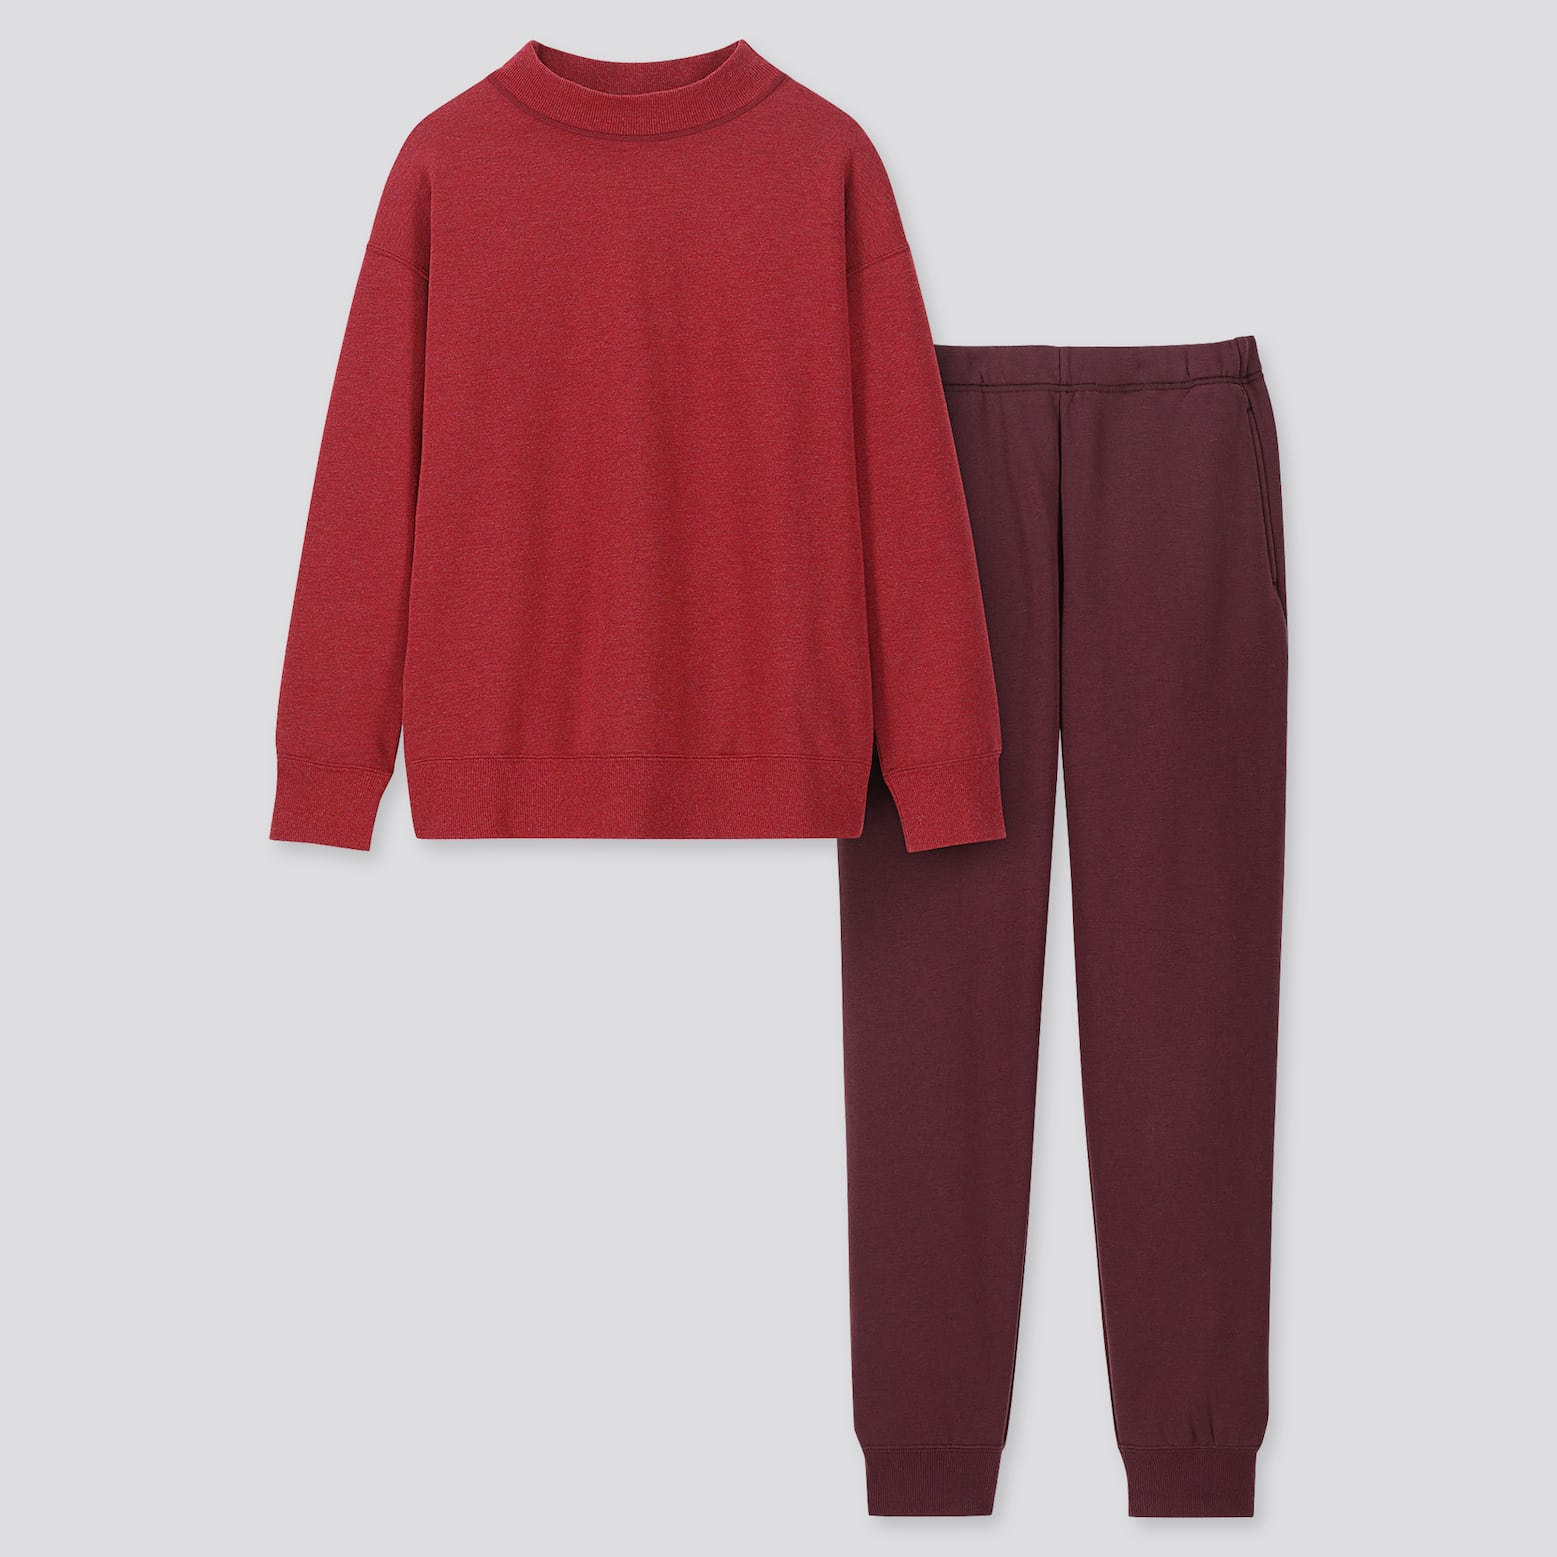 Extra Stretch Warm Long Sleeve Set by Uniqlo